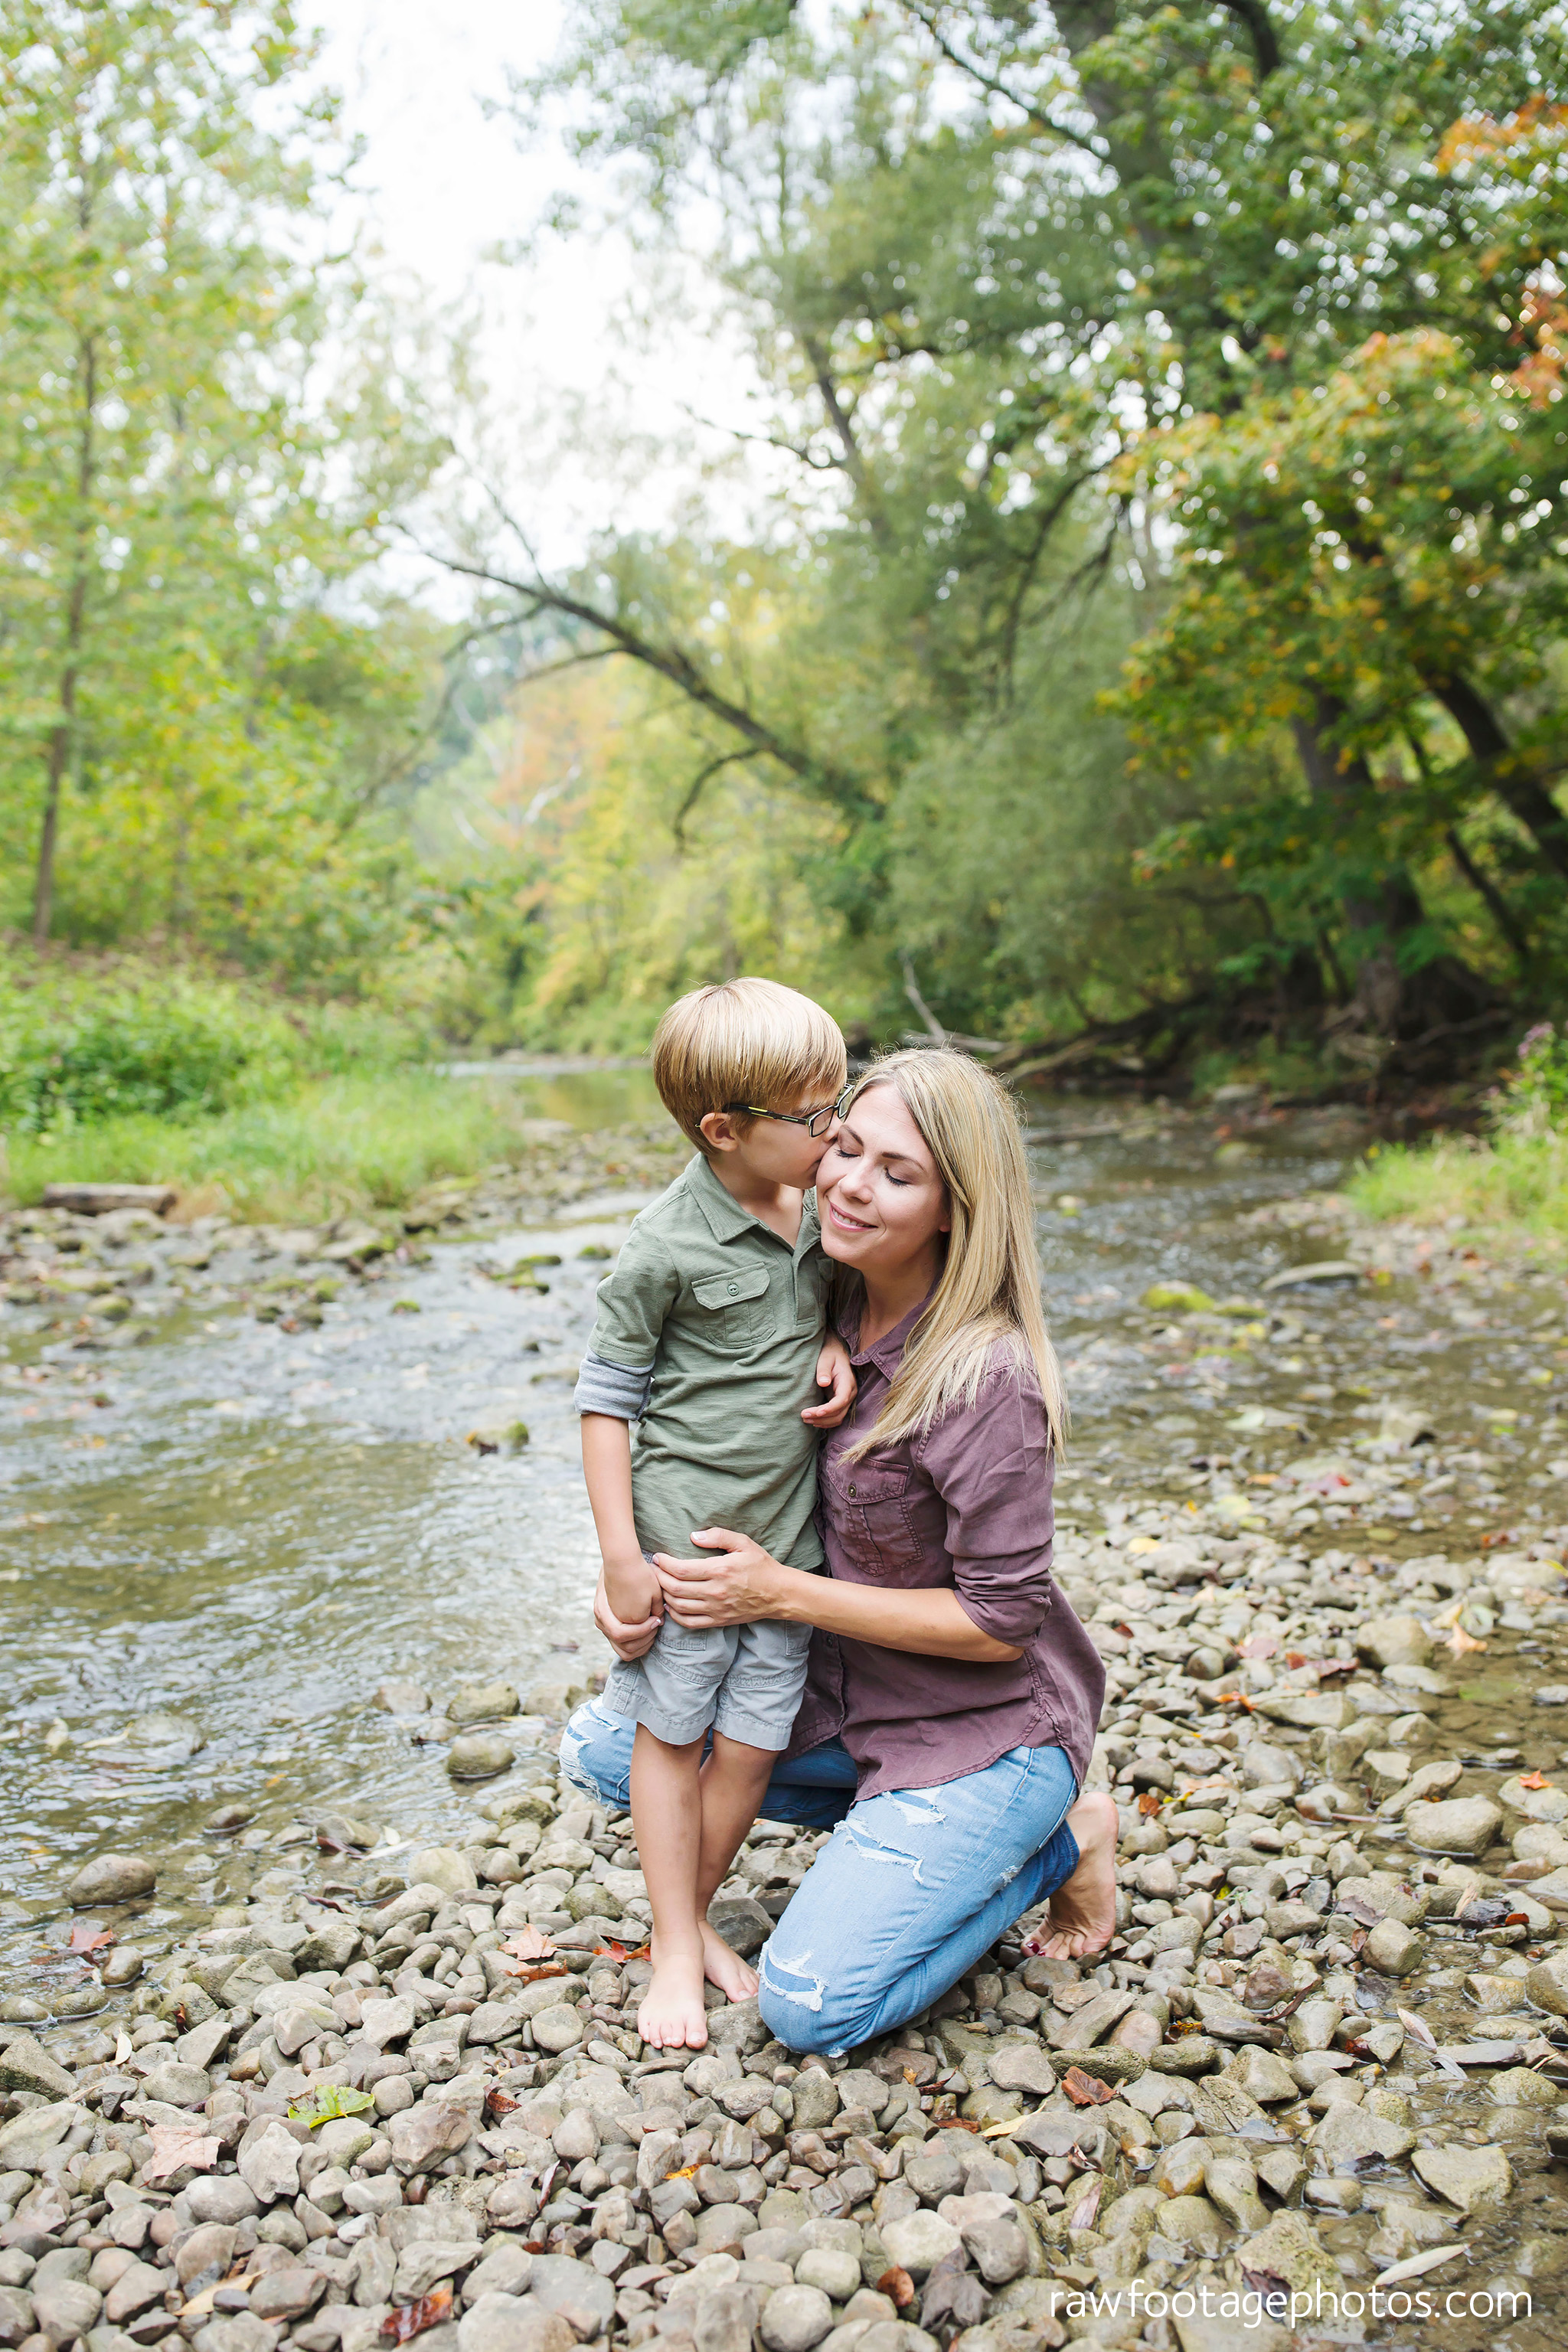 london_ontario_family_photographer-medway_creek-raw_footage_photography009.jpg